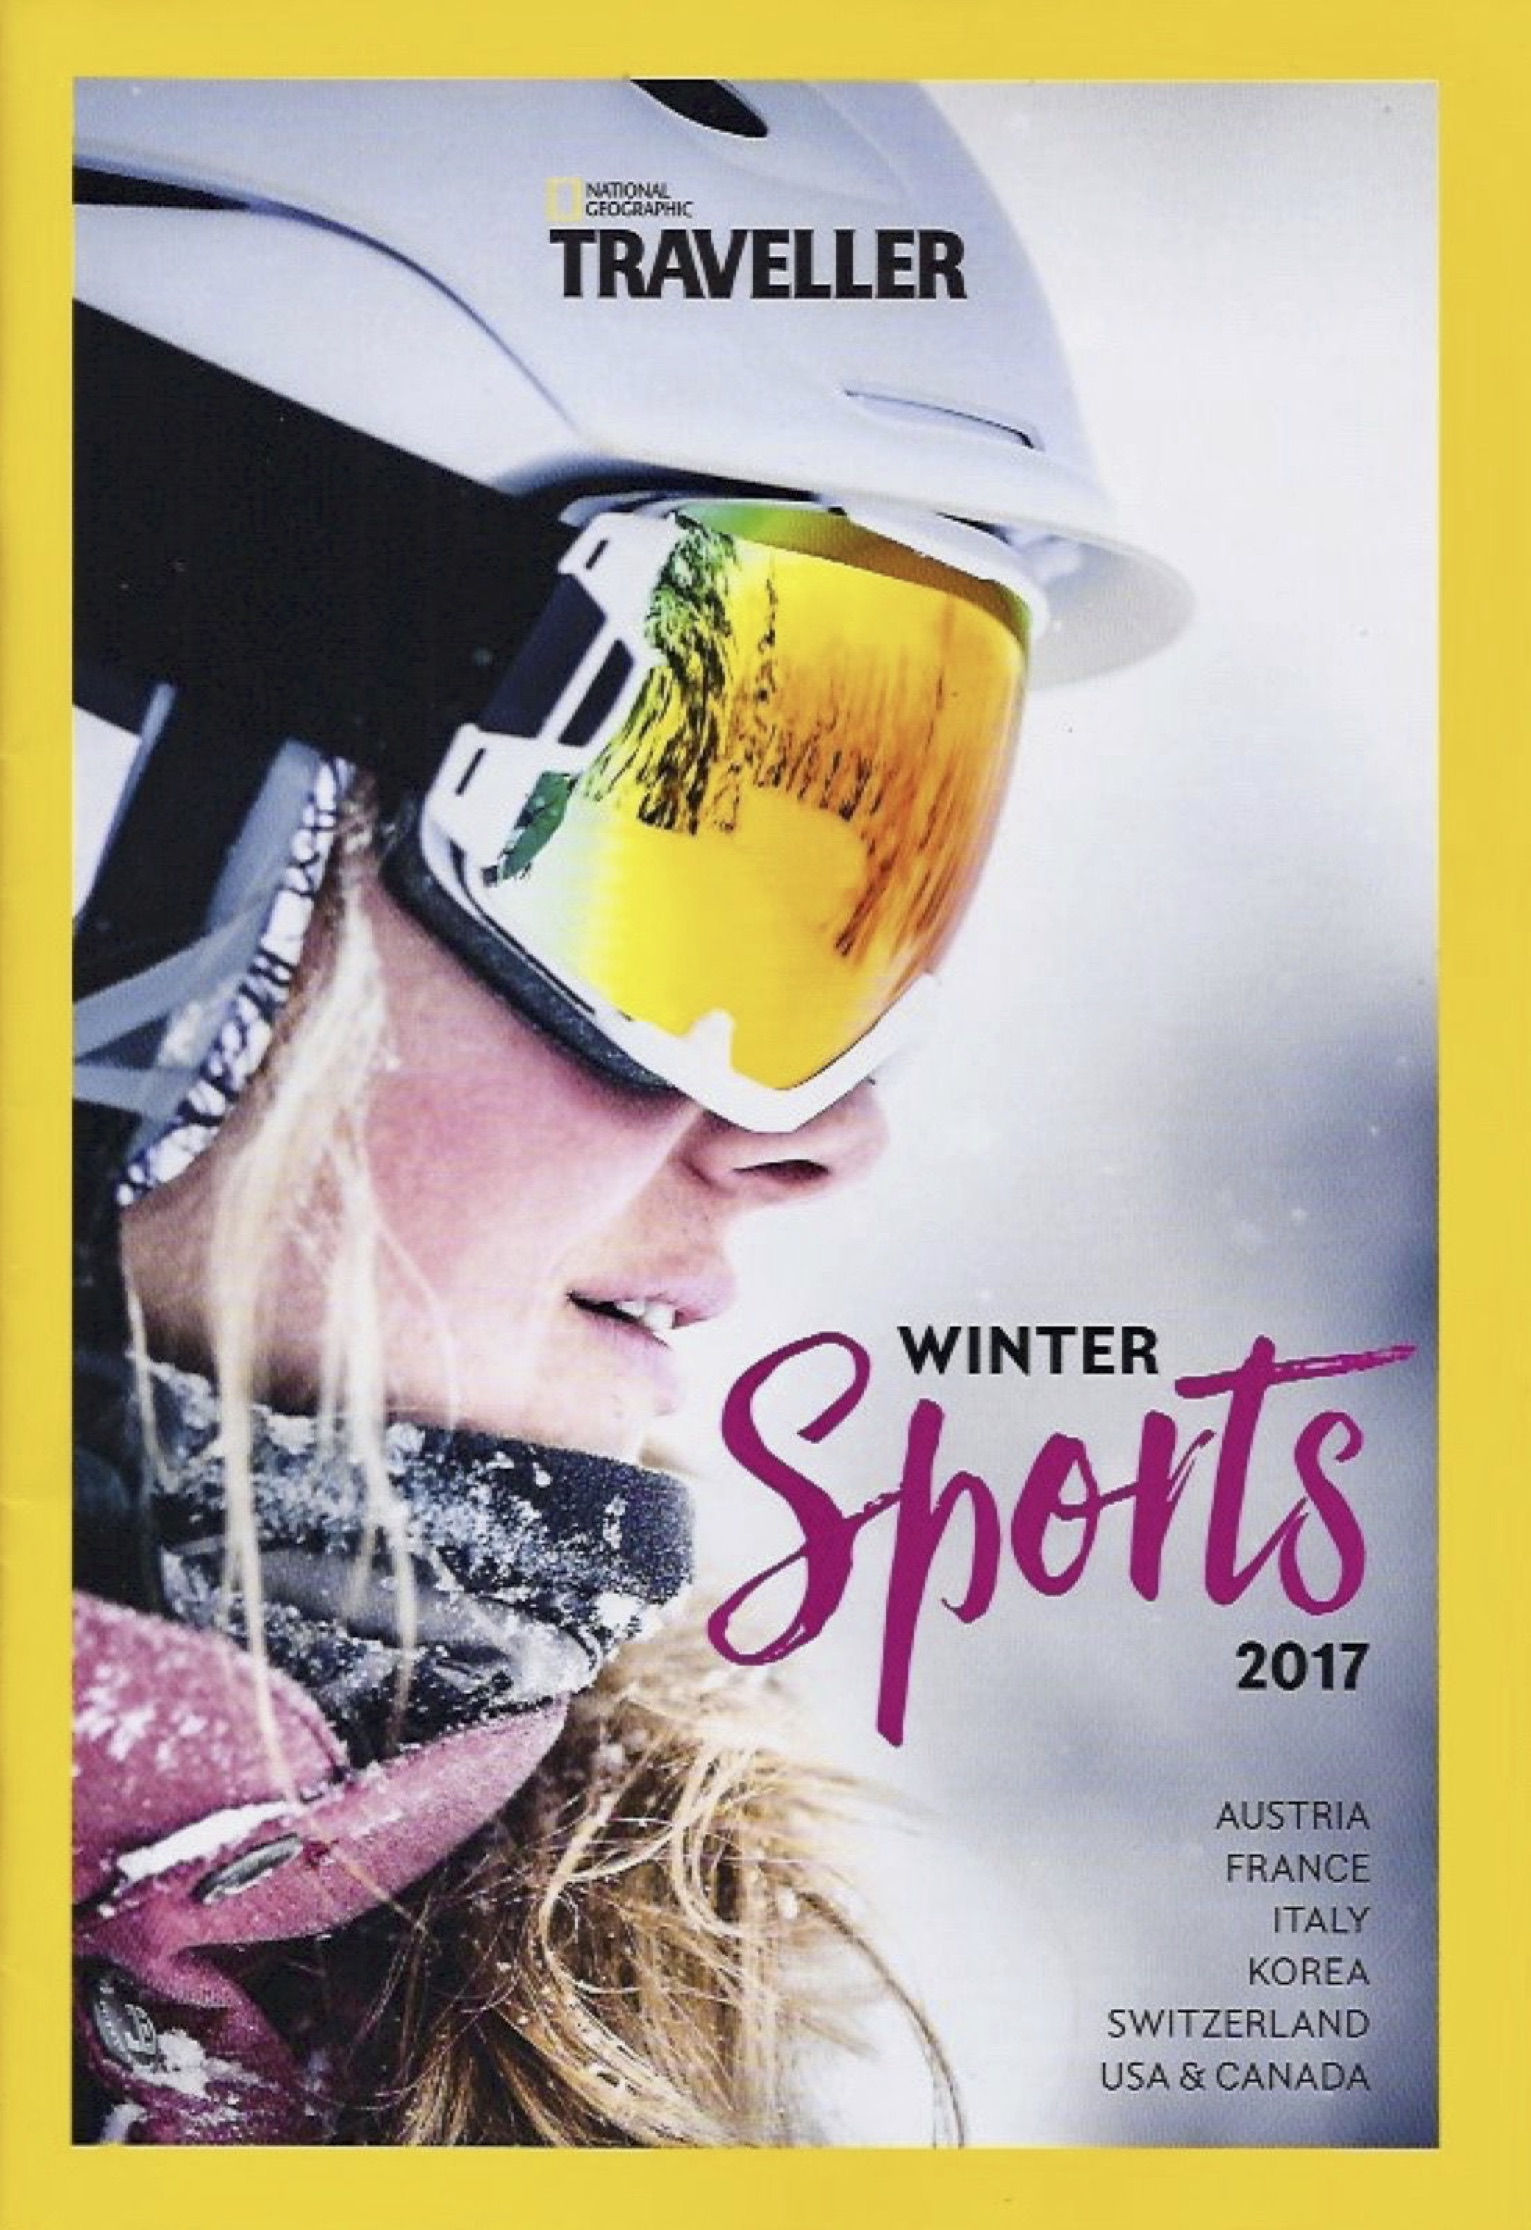 13_National Geographic_WinterSports_Hotel Walther.jpg